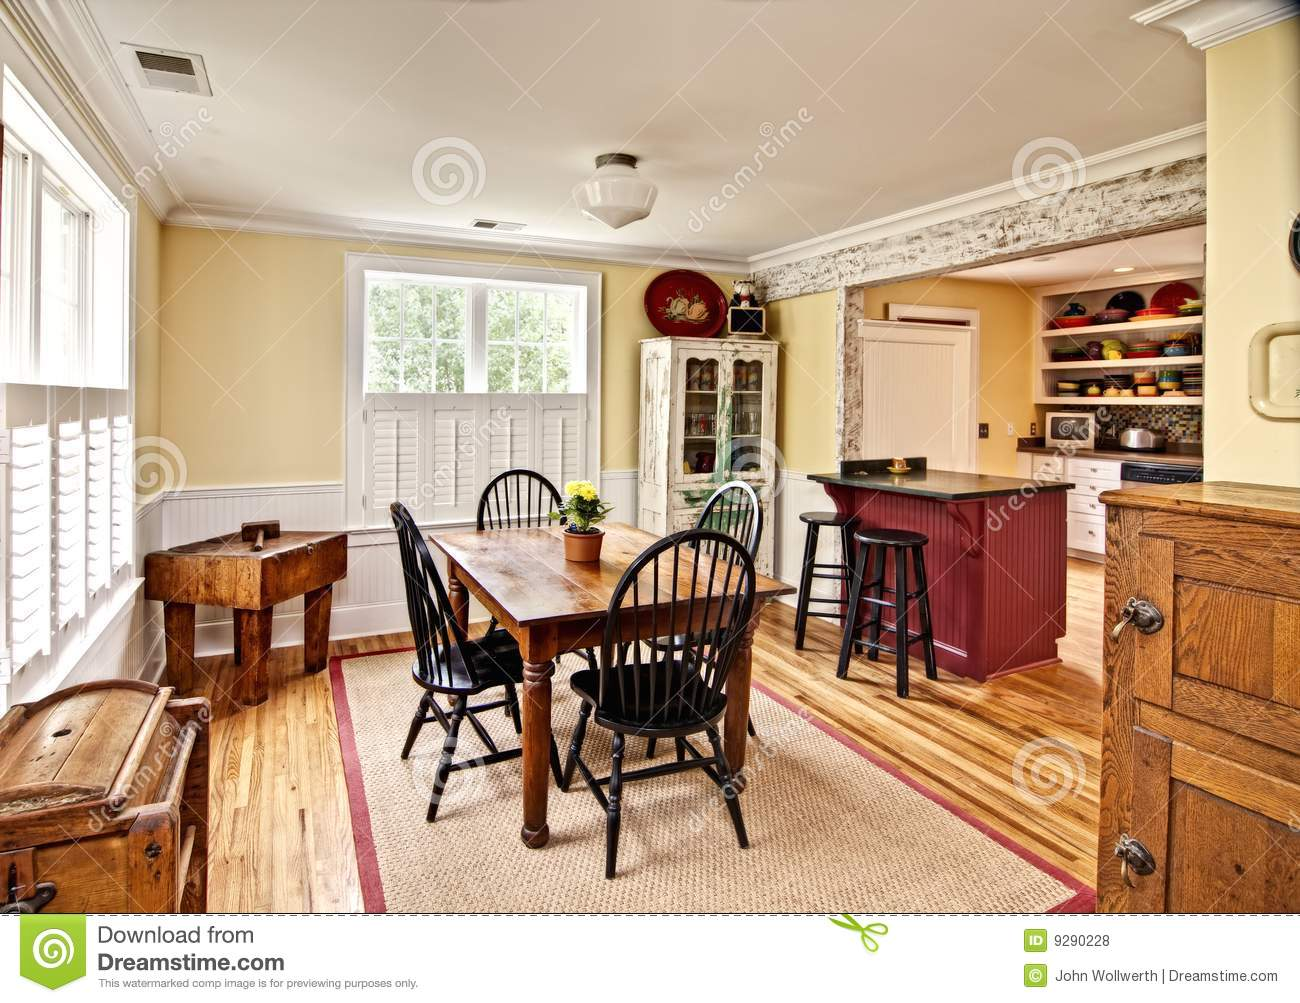 Eclectic Dining Room Royalty Free Stock Photos  Image 9290228